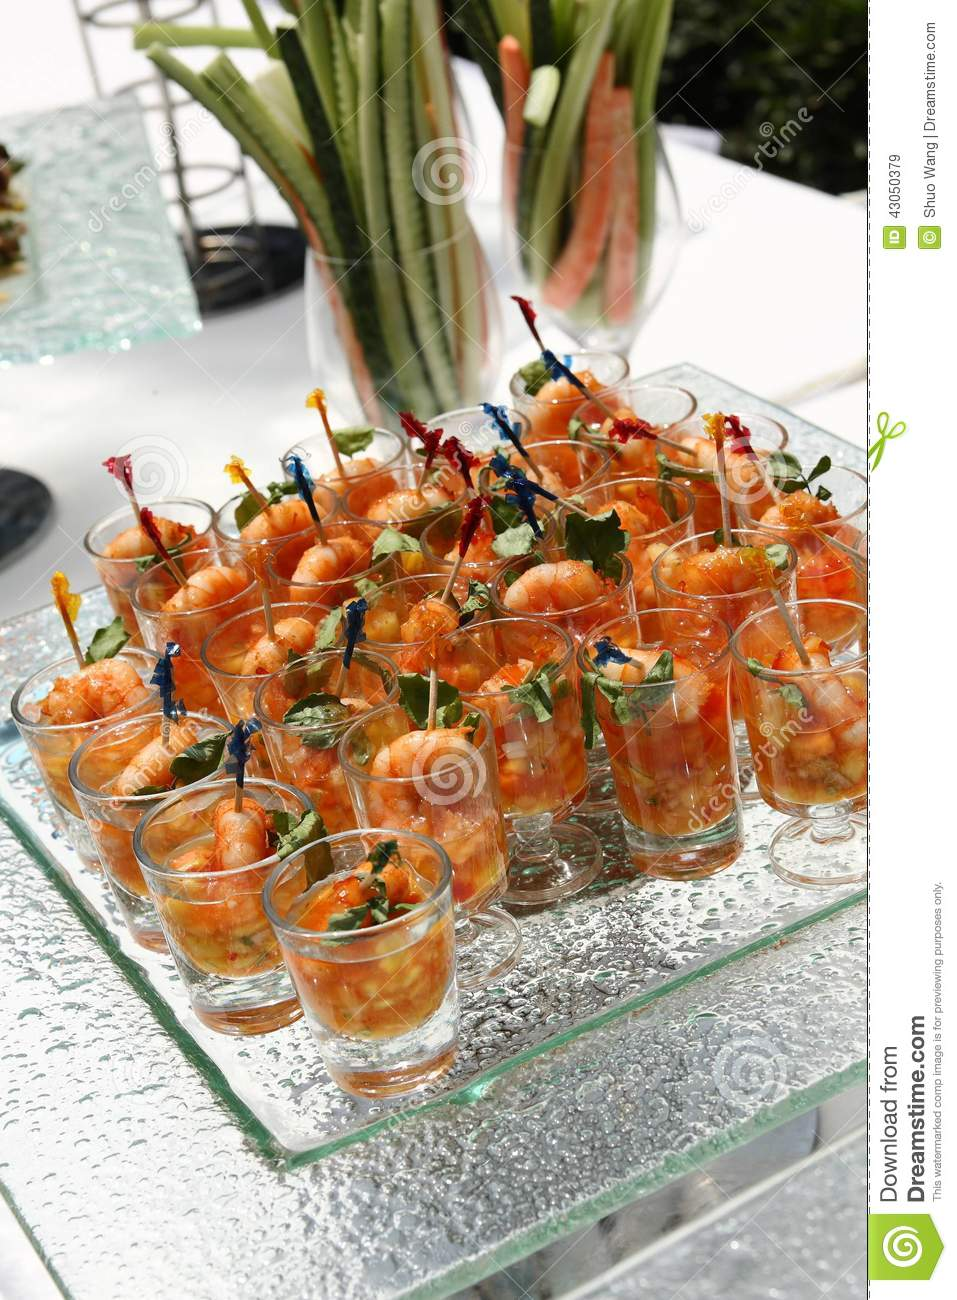 Catering food stock photo image 43050379 for Meal outdoors